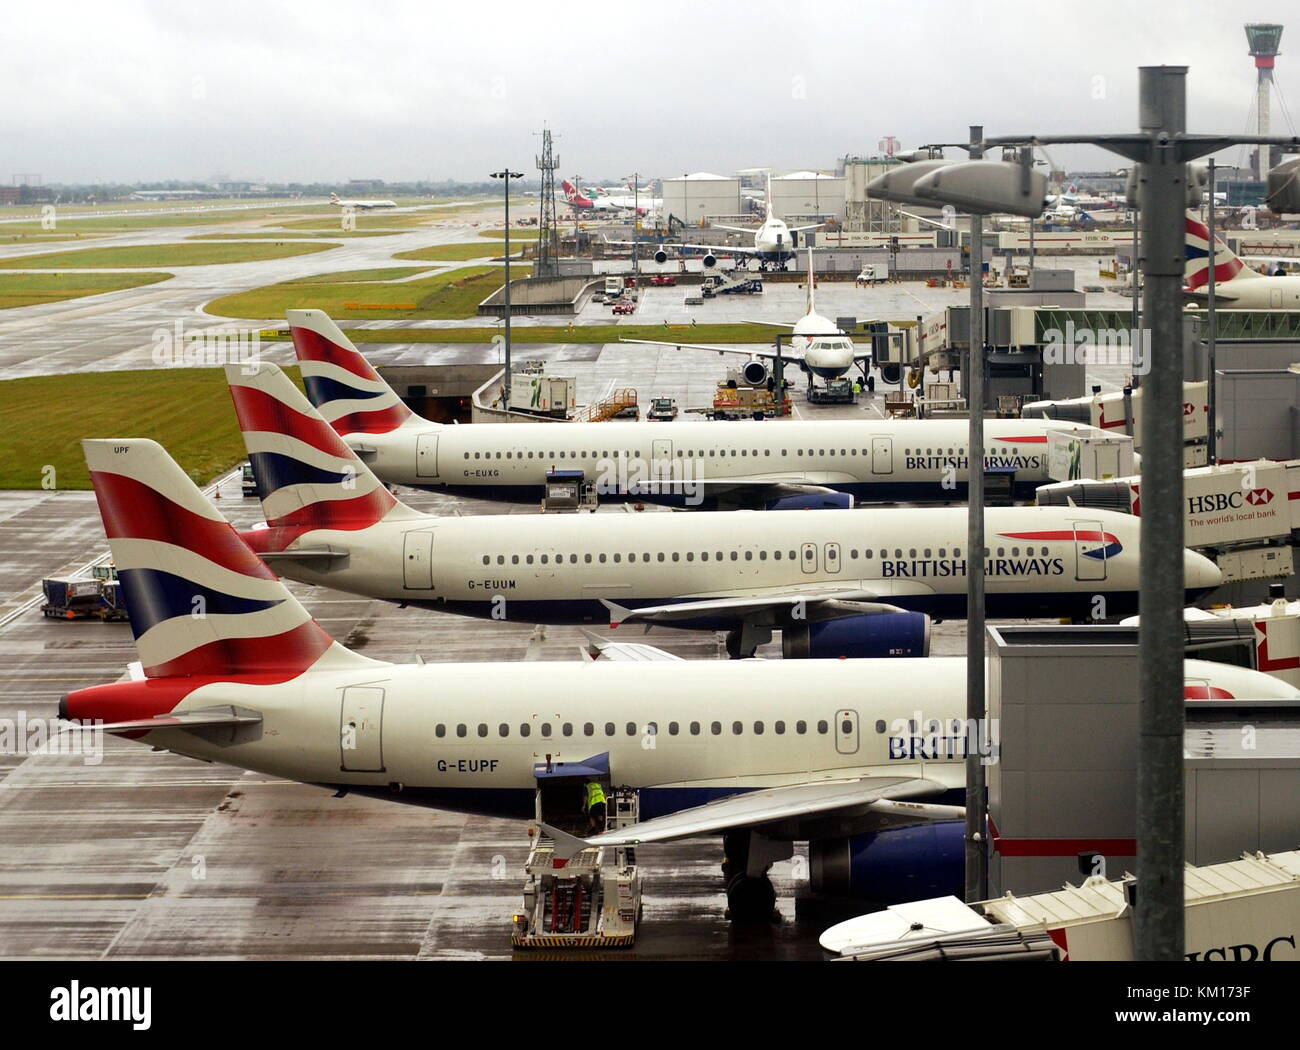 AJAXNETPHOTO. 2008, LONDON,HEATHROW, ENGLAND. - TERMINAL 5, LONDON HEATHROW AIRPORT. PHOTO:JONATHAN EASTLAND/AJAX - Stock Image